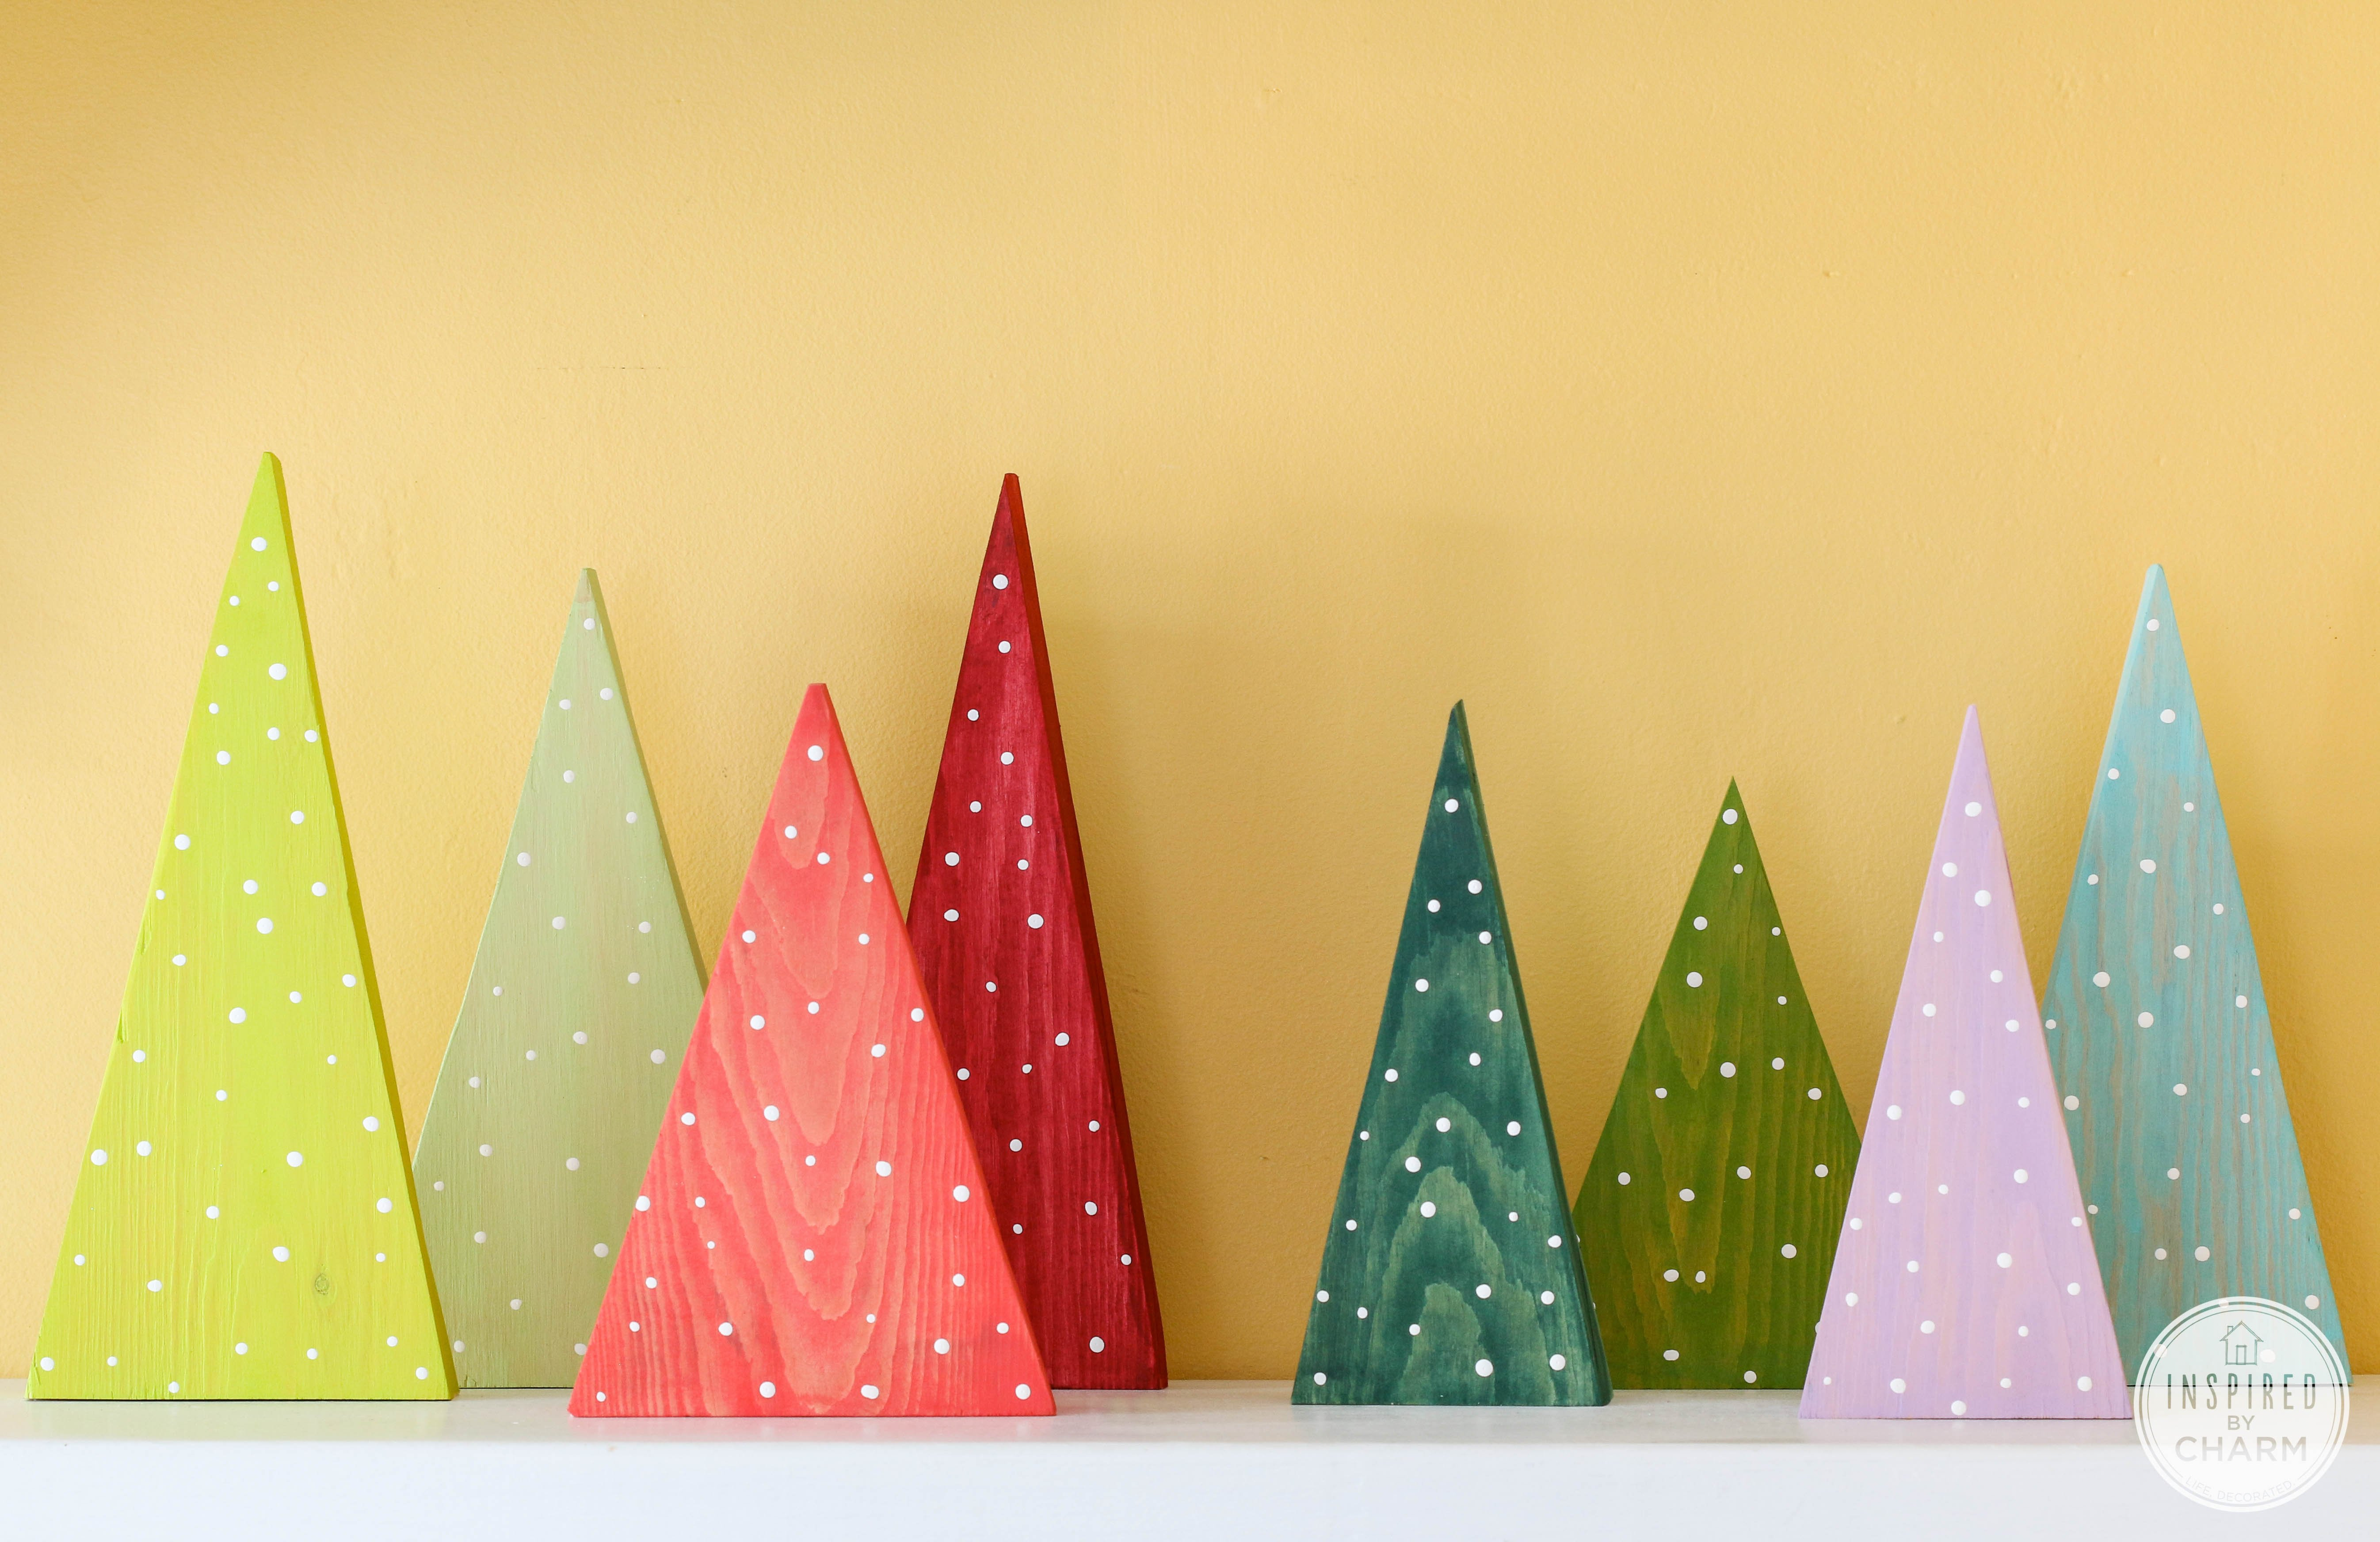 DIY Wood Paint Christmas Trees #christmas #craft #holiday #decor & 100+ Creative Christmas Ideas Recipes Crafts and more!